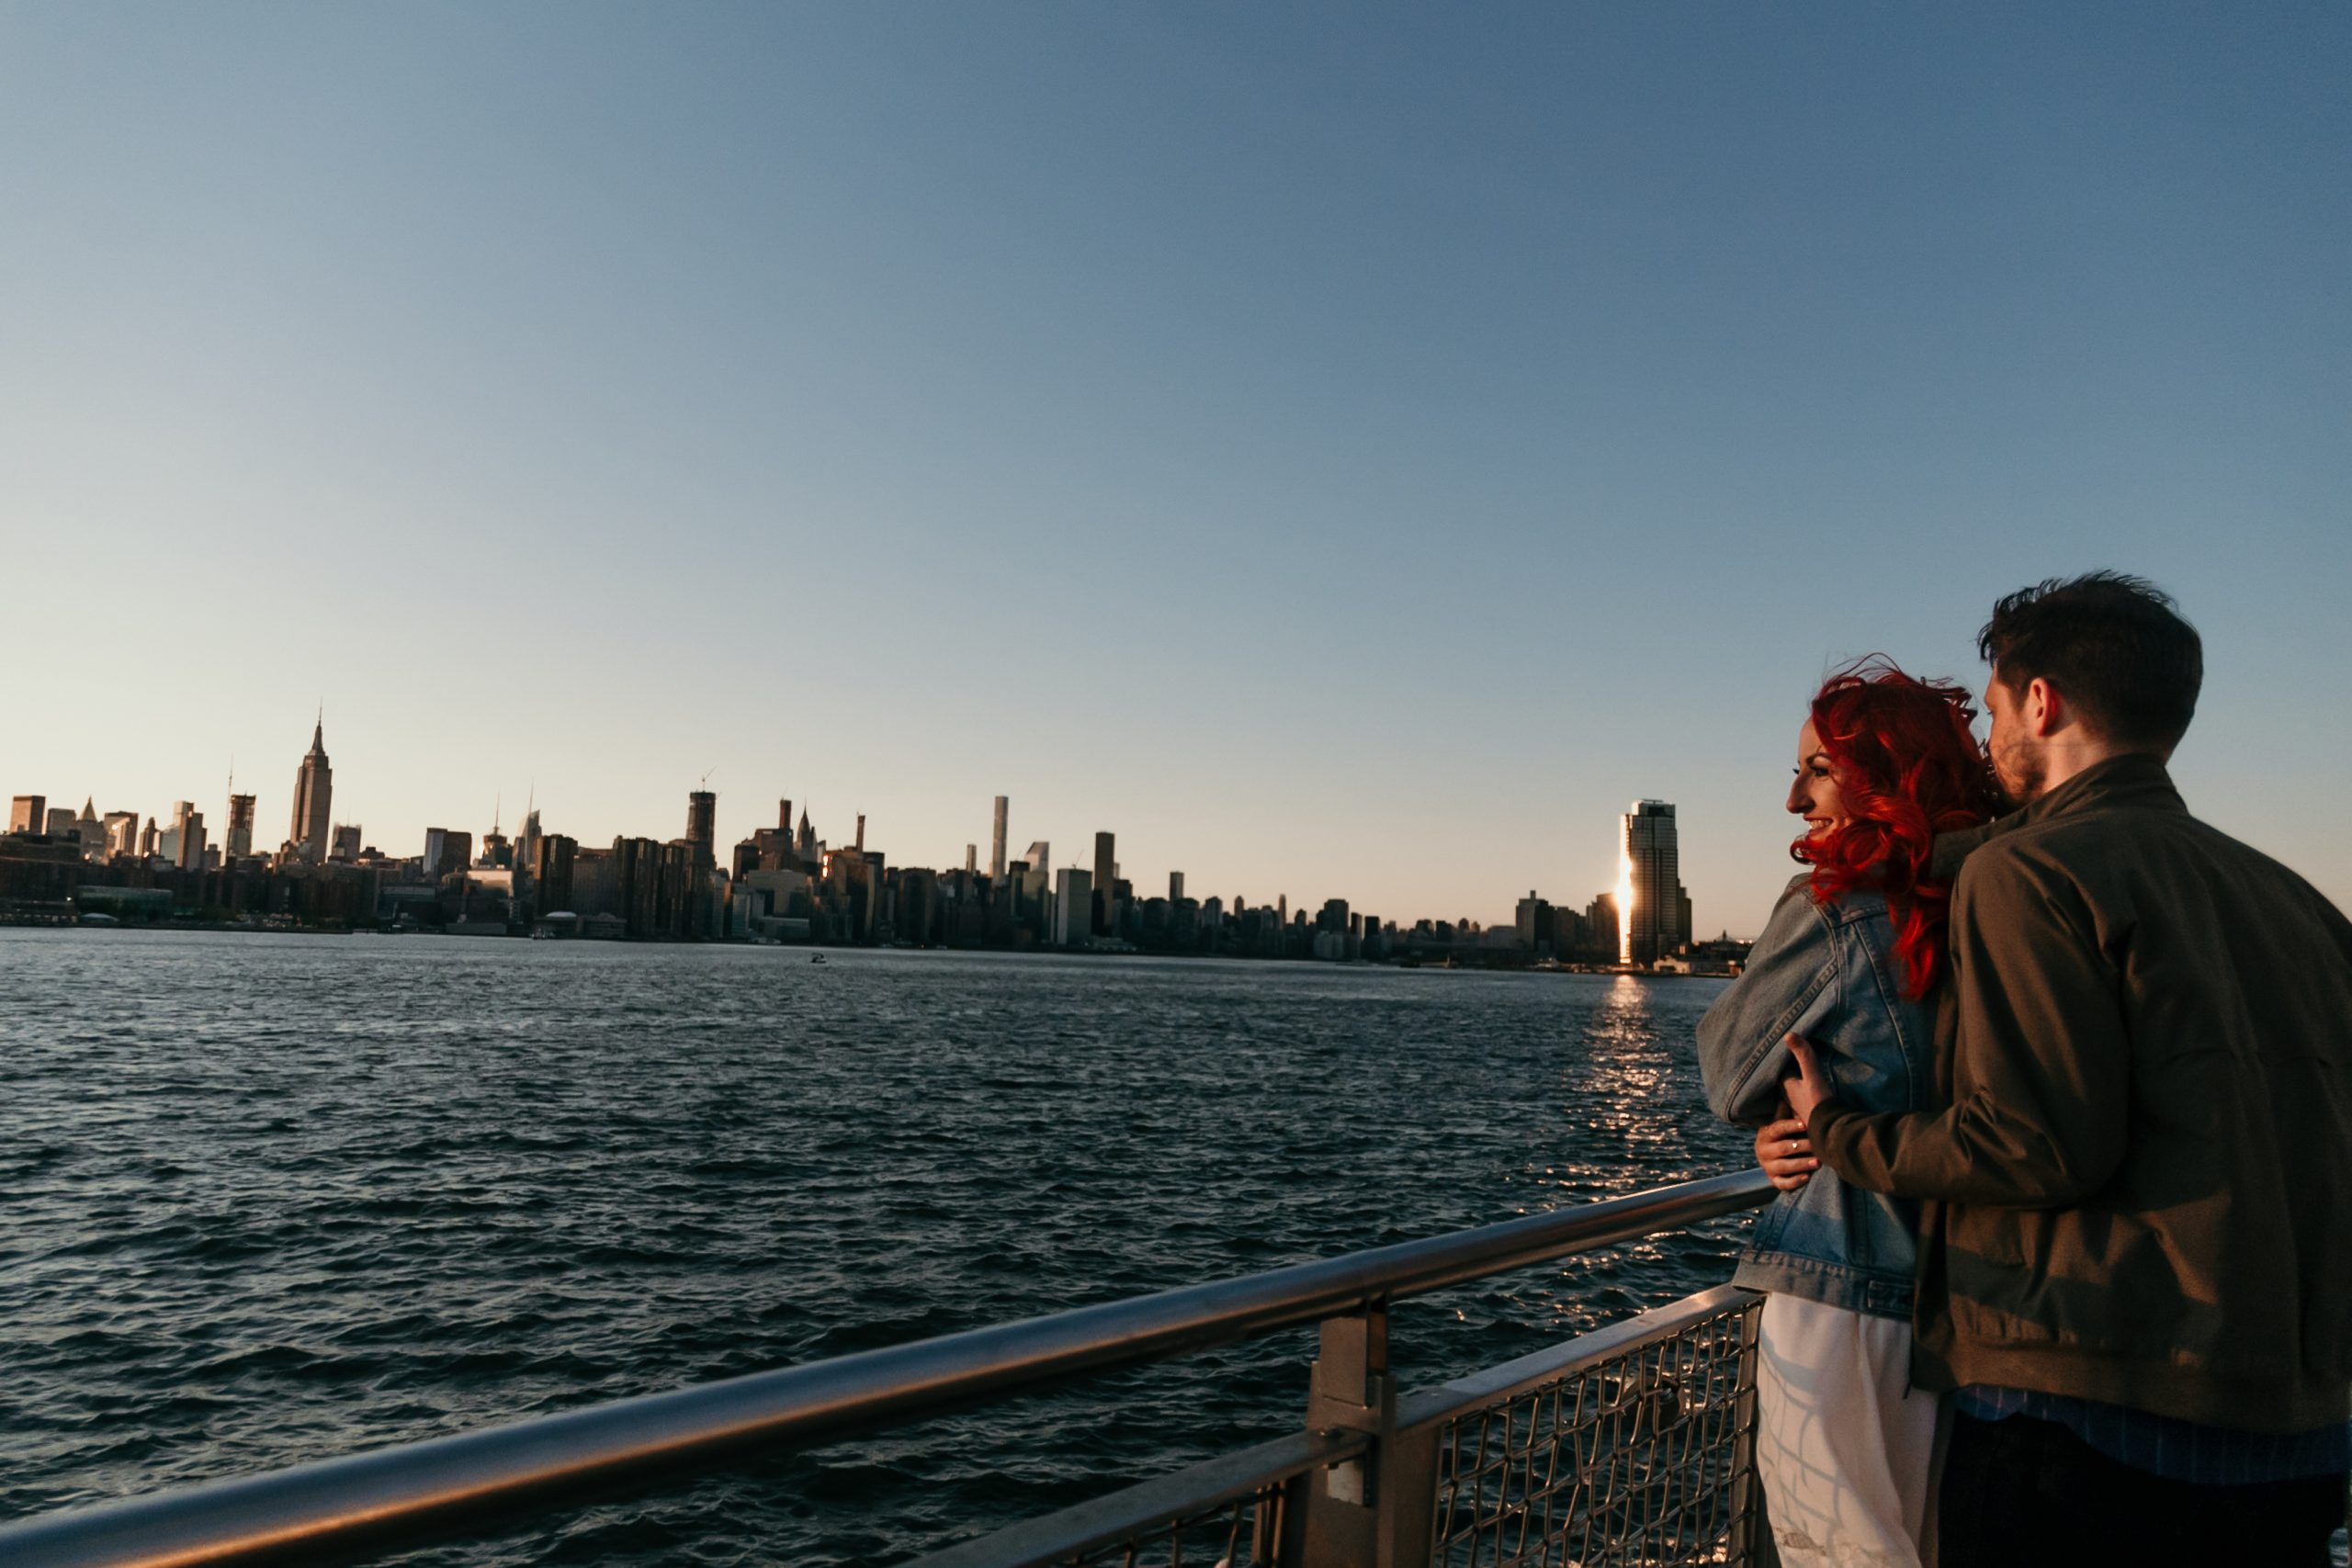 williamsburg-pier-skyline-backdrop-engagement-photos-brooklyn-suessmoments-photographer-nyc